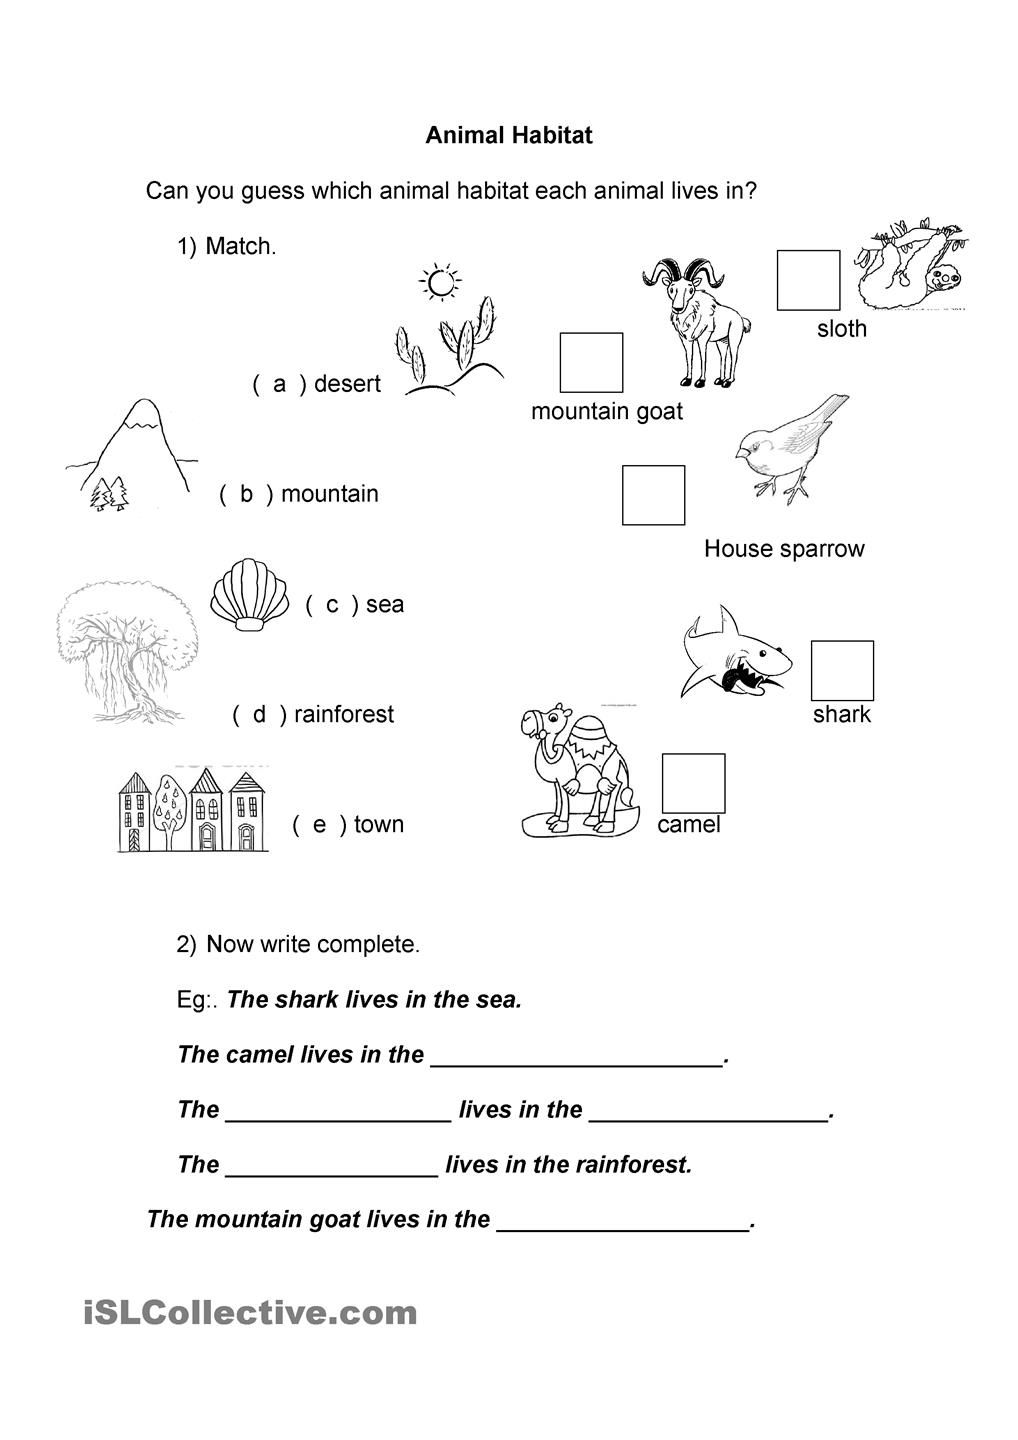 Worksheets Animal Habitats Worksheets animal habitat vertebrates and invertebrates pinterest habitats worksheets printable worksheets